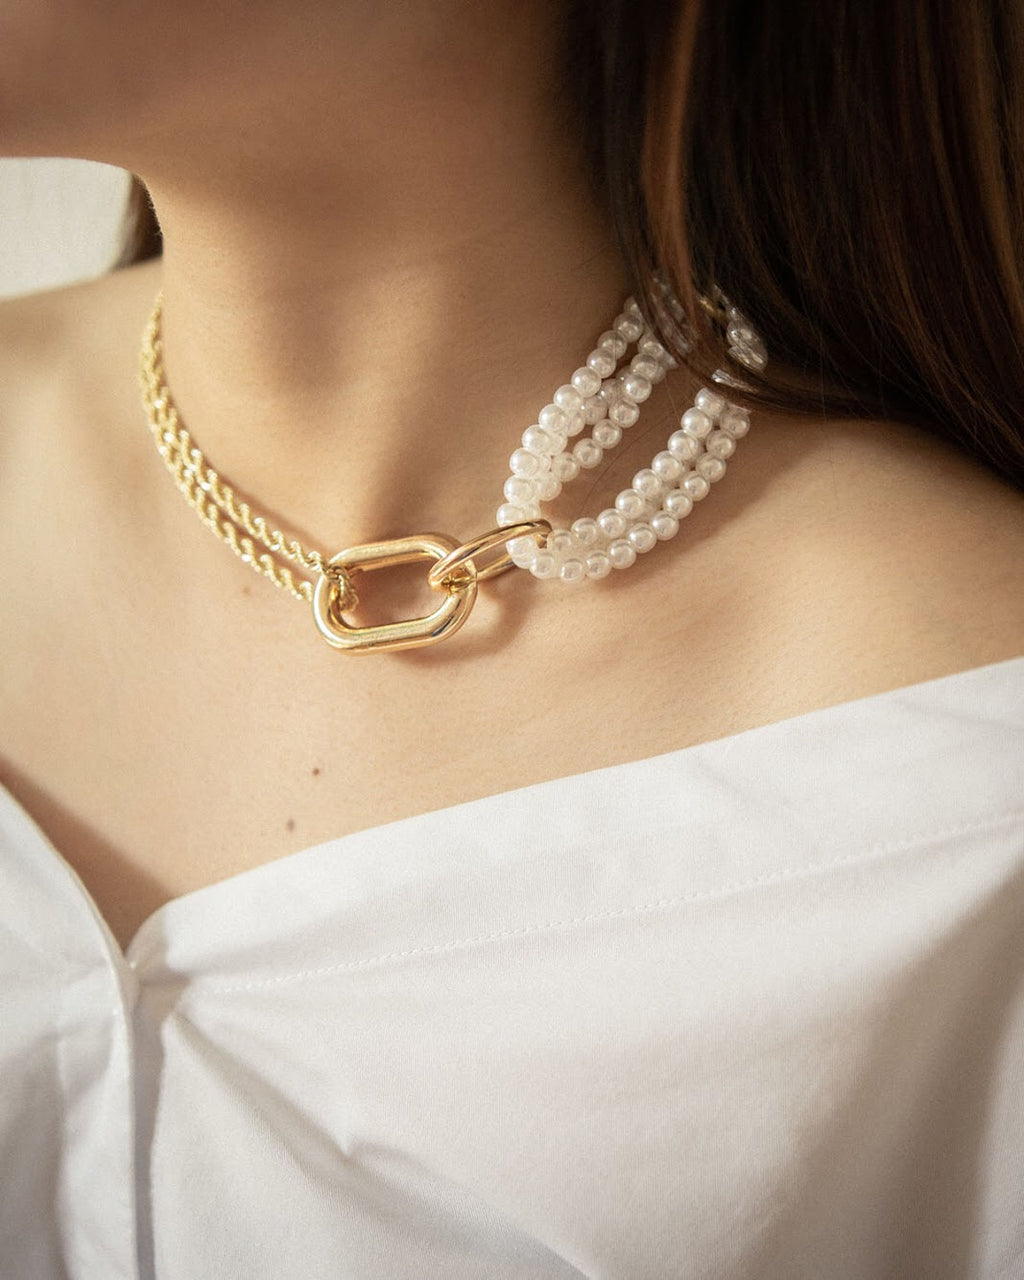 Unique women's choker chain necklace featuring a mix of gold chains and pearls - Shop the Isabeau necklace at thehexad.com